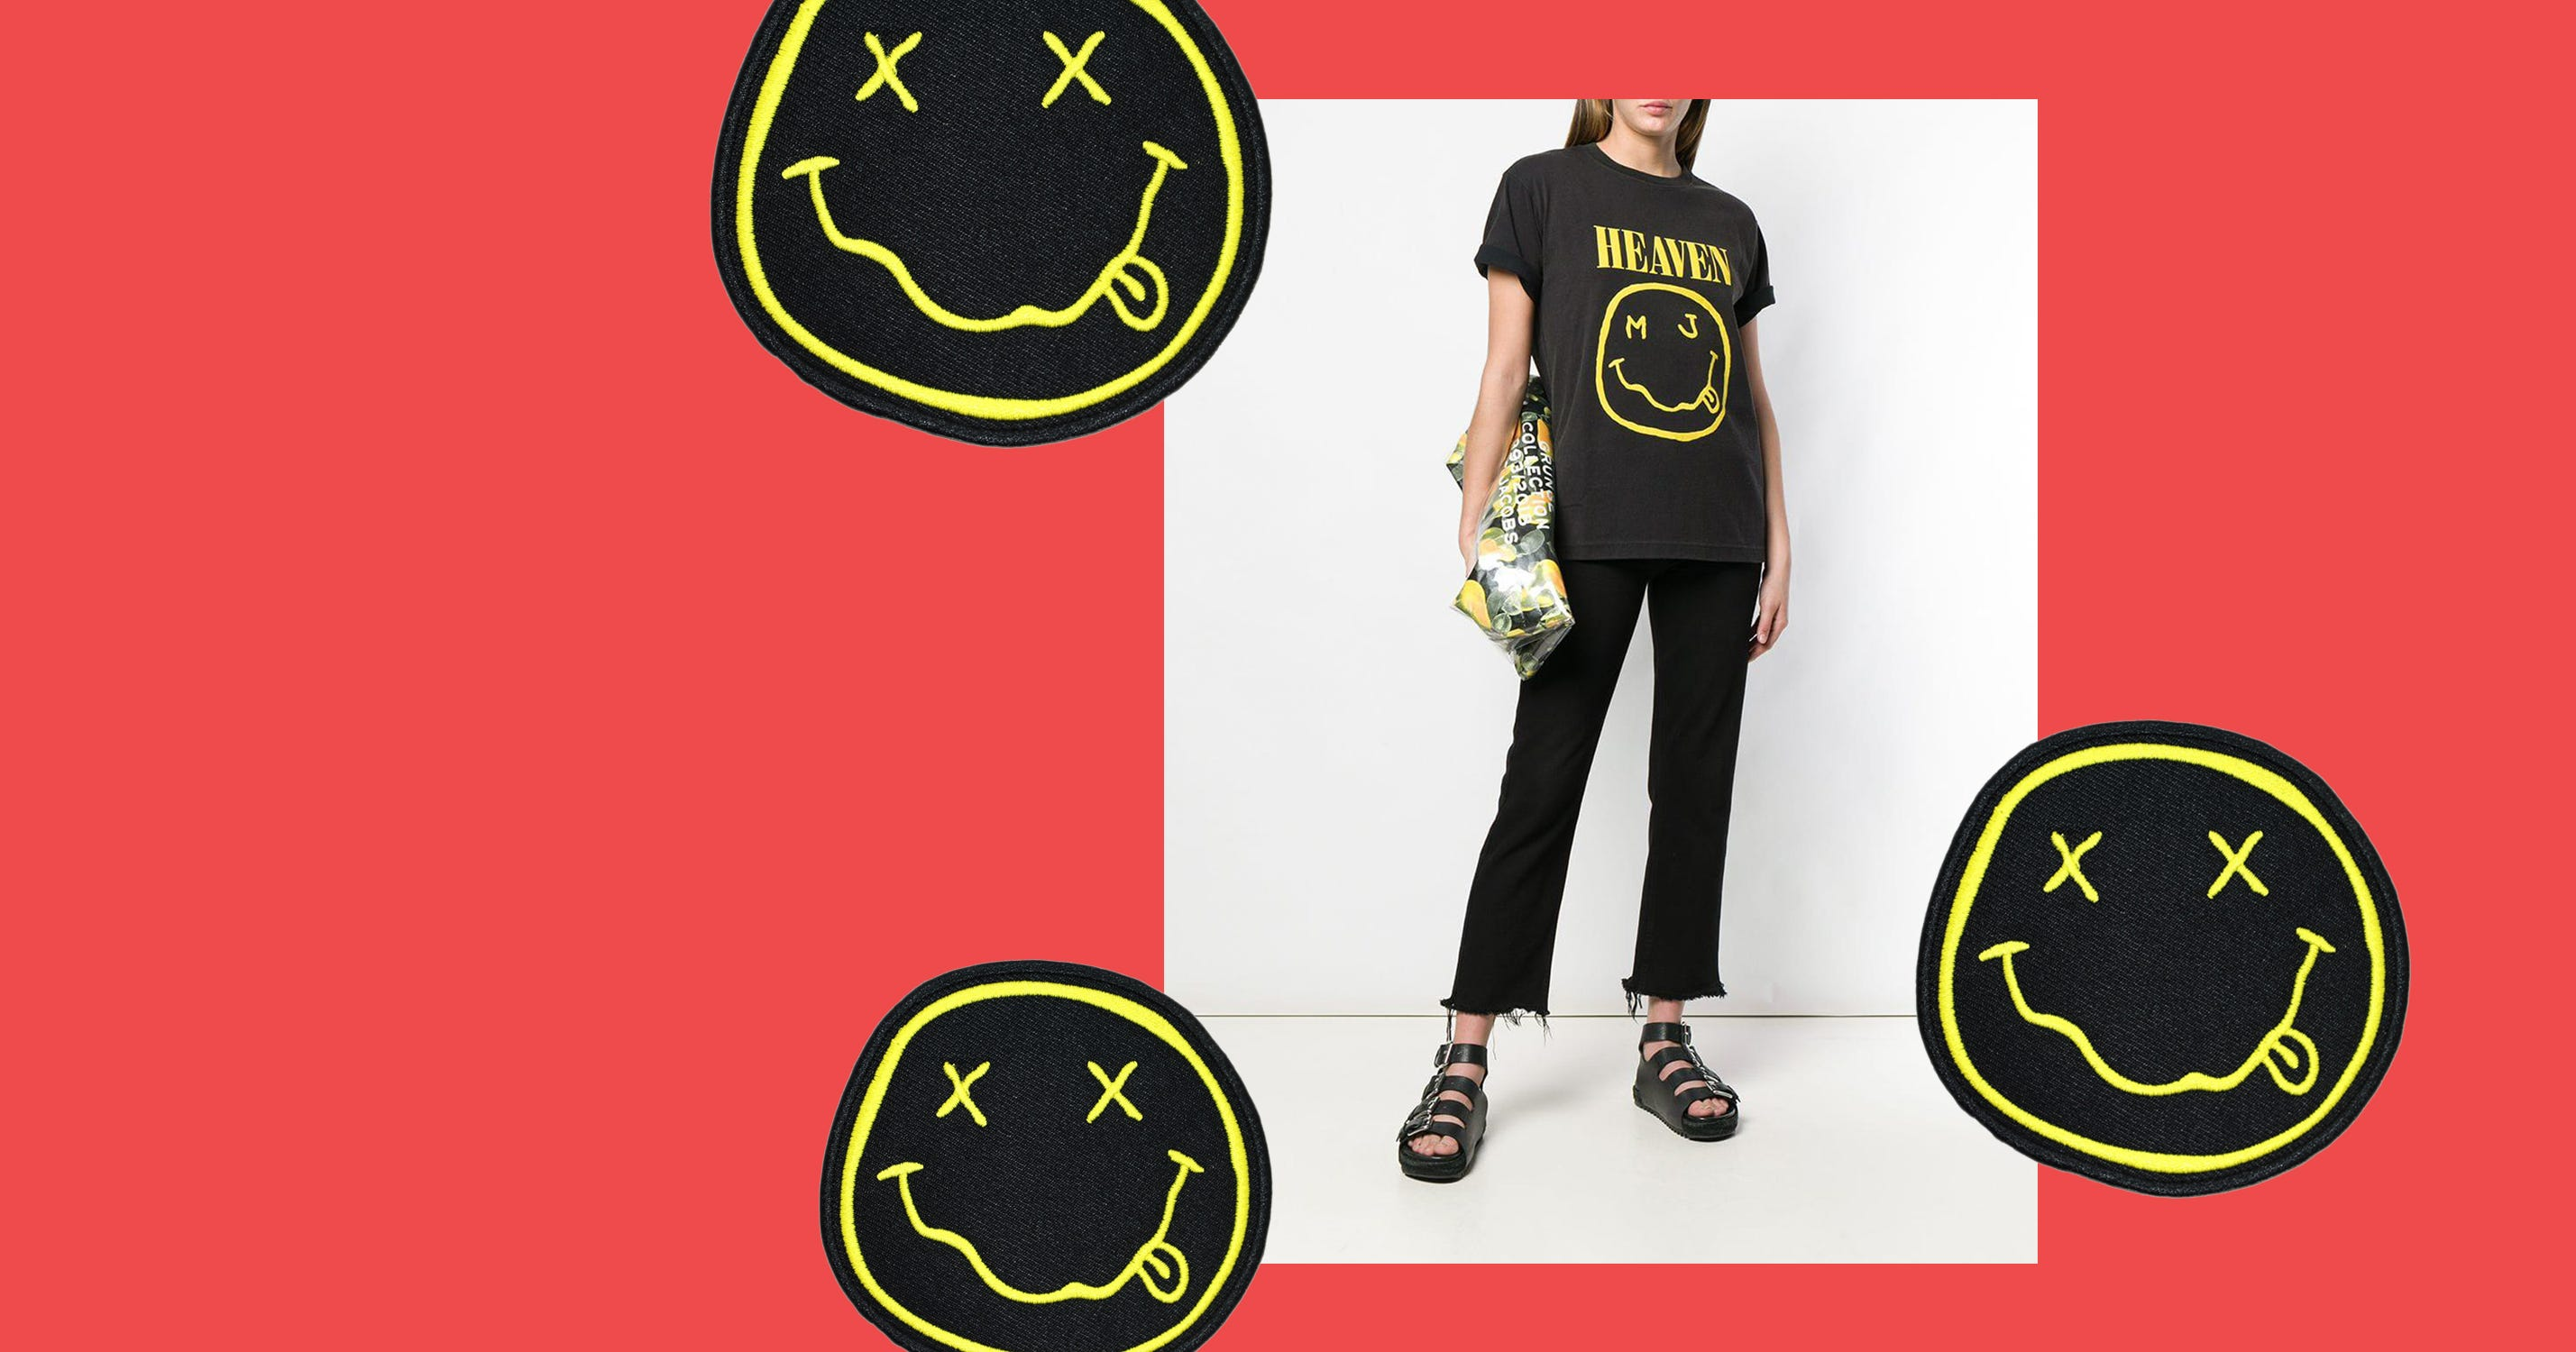 b85ce845c936d Nirvana Reportedly Suing Marc Jacobs - Smiley Logo